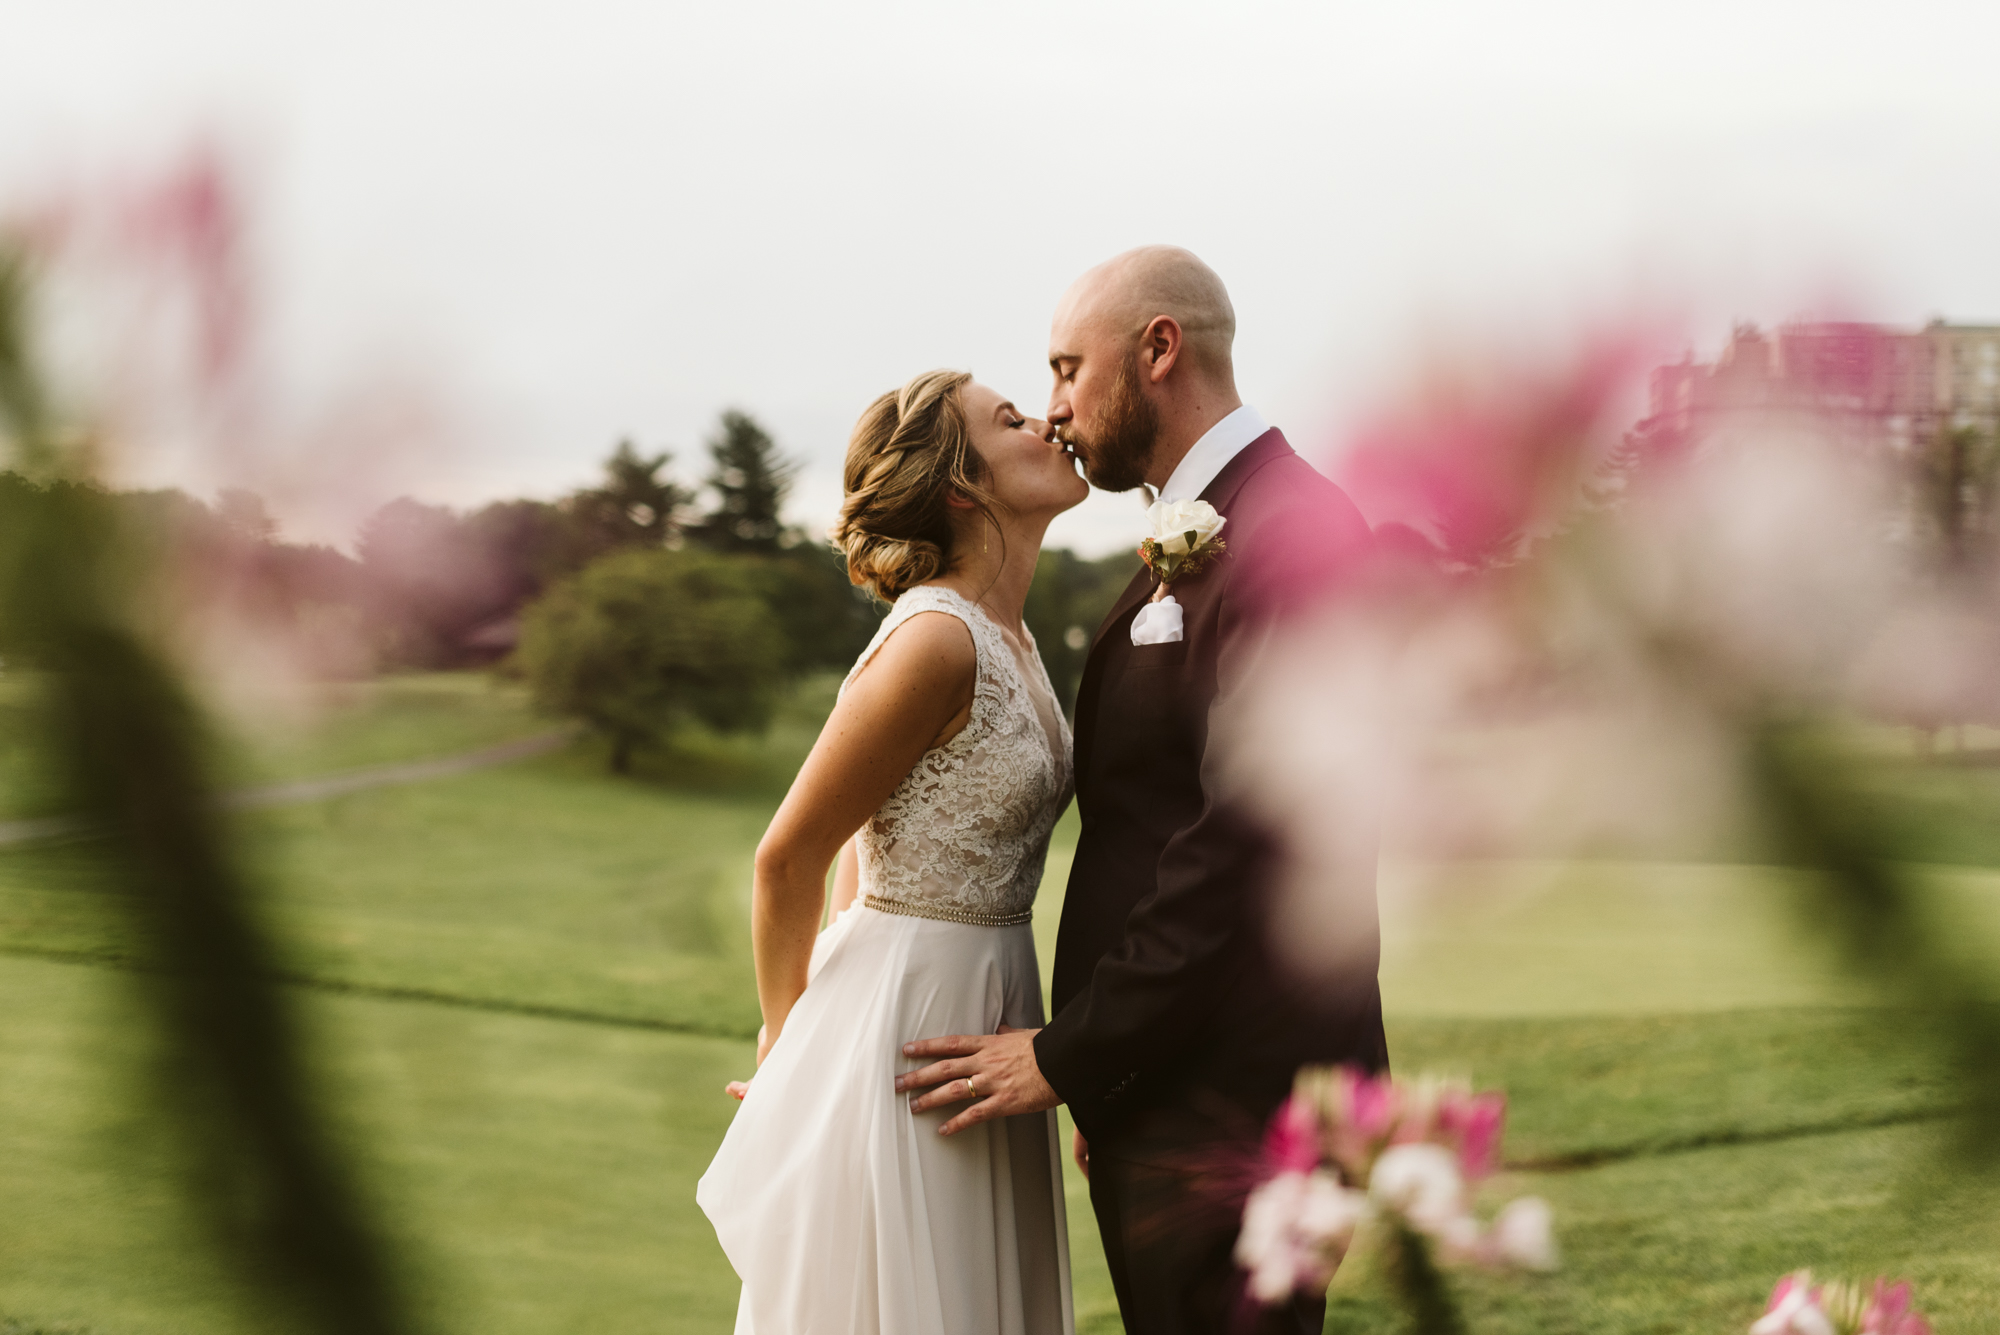 Elegant, Columbia Country Club, Chevy Chase Maryland, Baltimore Wedding Photographer, Classic, Traditional, Romantic Photo of Bride and Groom Kissing, Pink and White Flowers